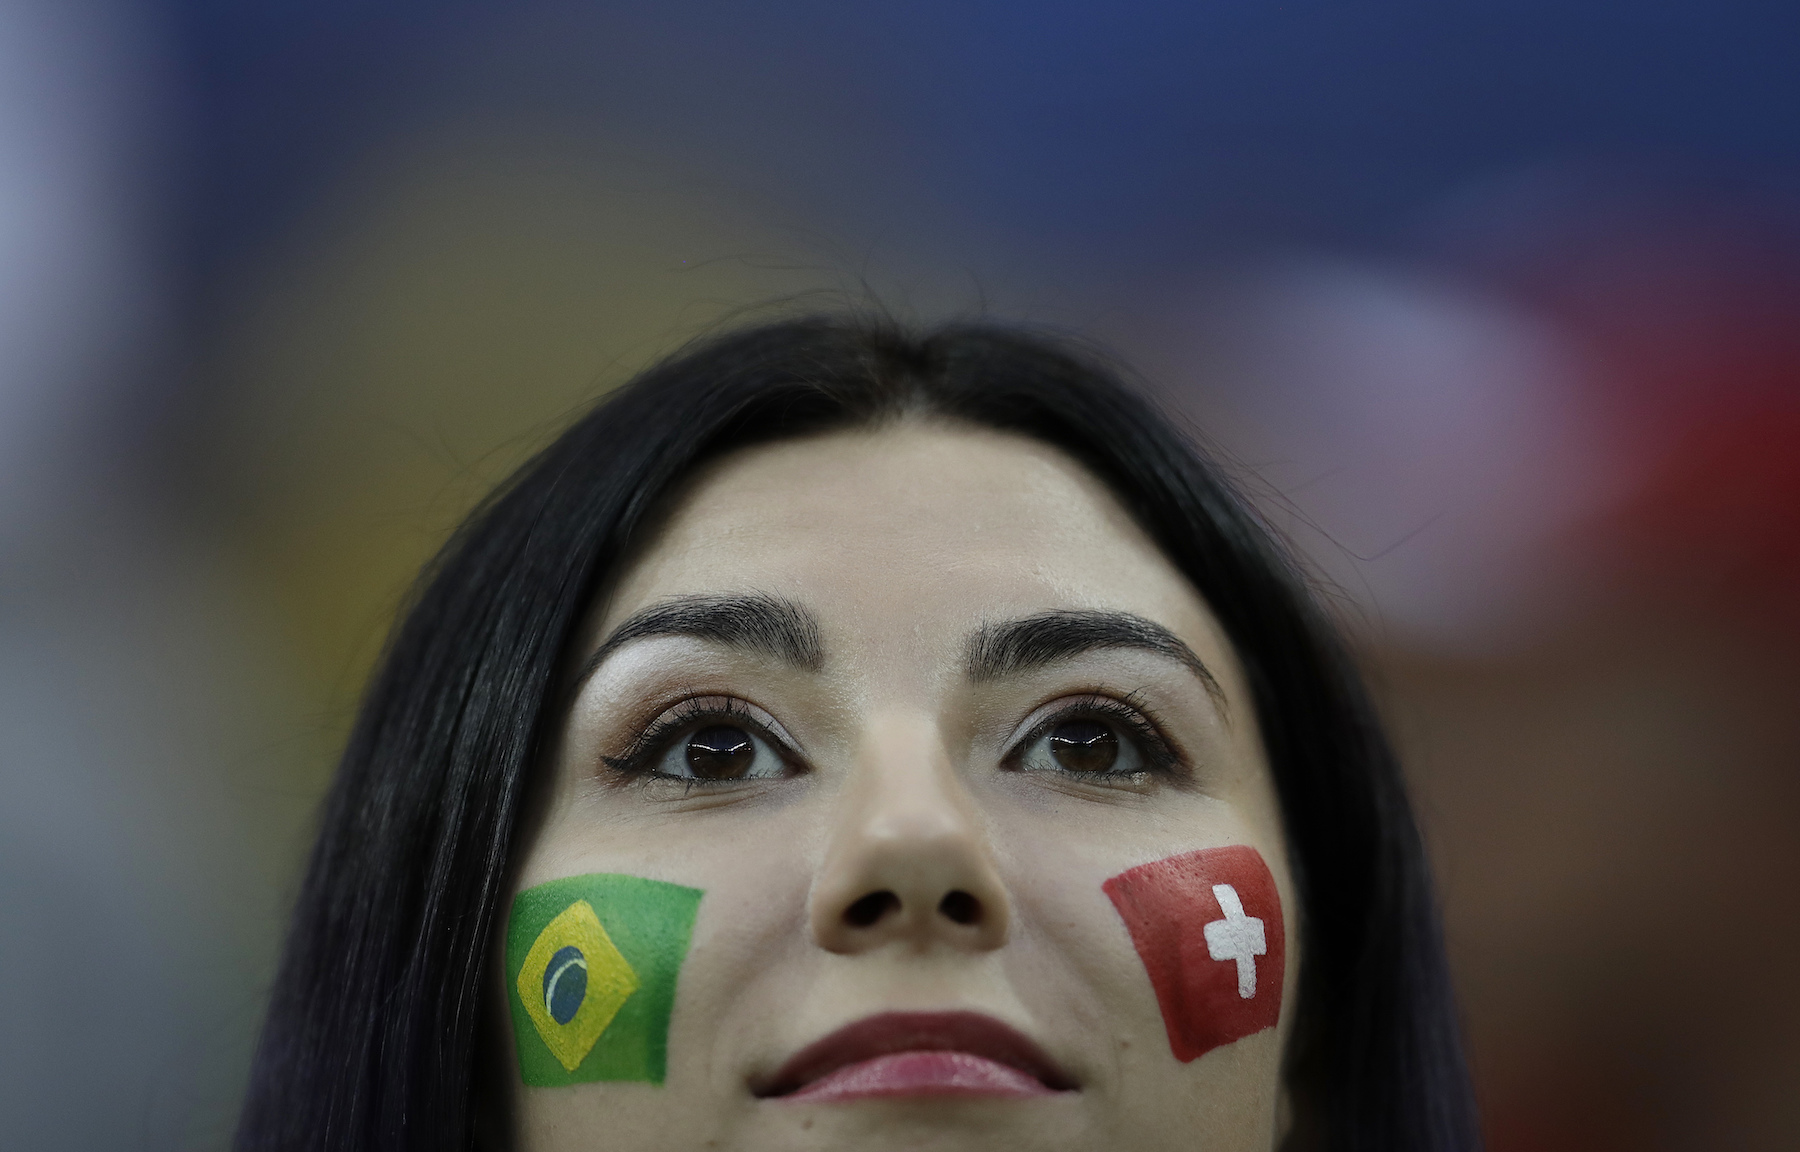 <div class='meta'><div class='origin-logo' data-origin='AP'></div><span class='caption-text' data-credit='AP Photo/Felipe Dana'>A soccer supporter show flags painted on her cheeks during the group E match between Brazil and Switzerland at the 2018 soccer World Cup in the Rostov Arena.</span></div>